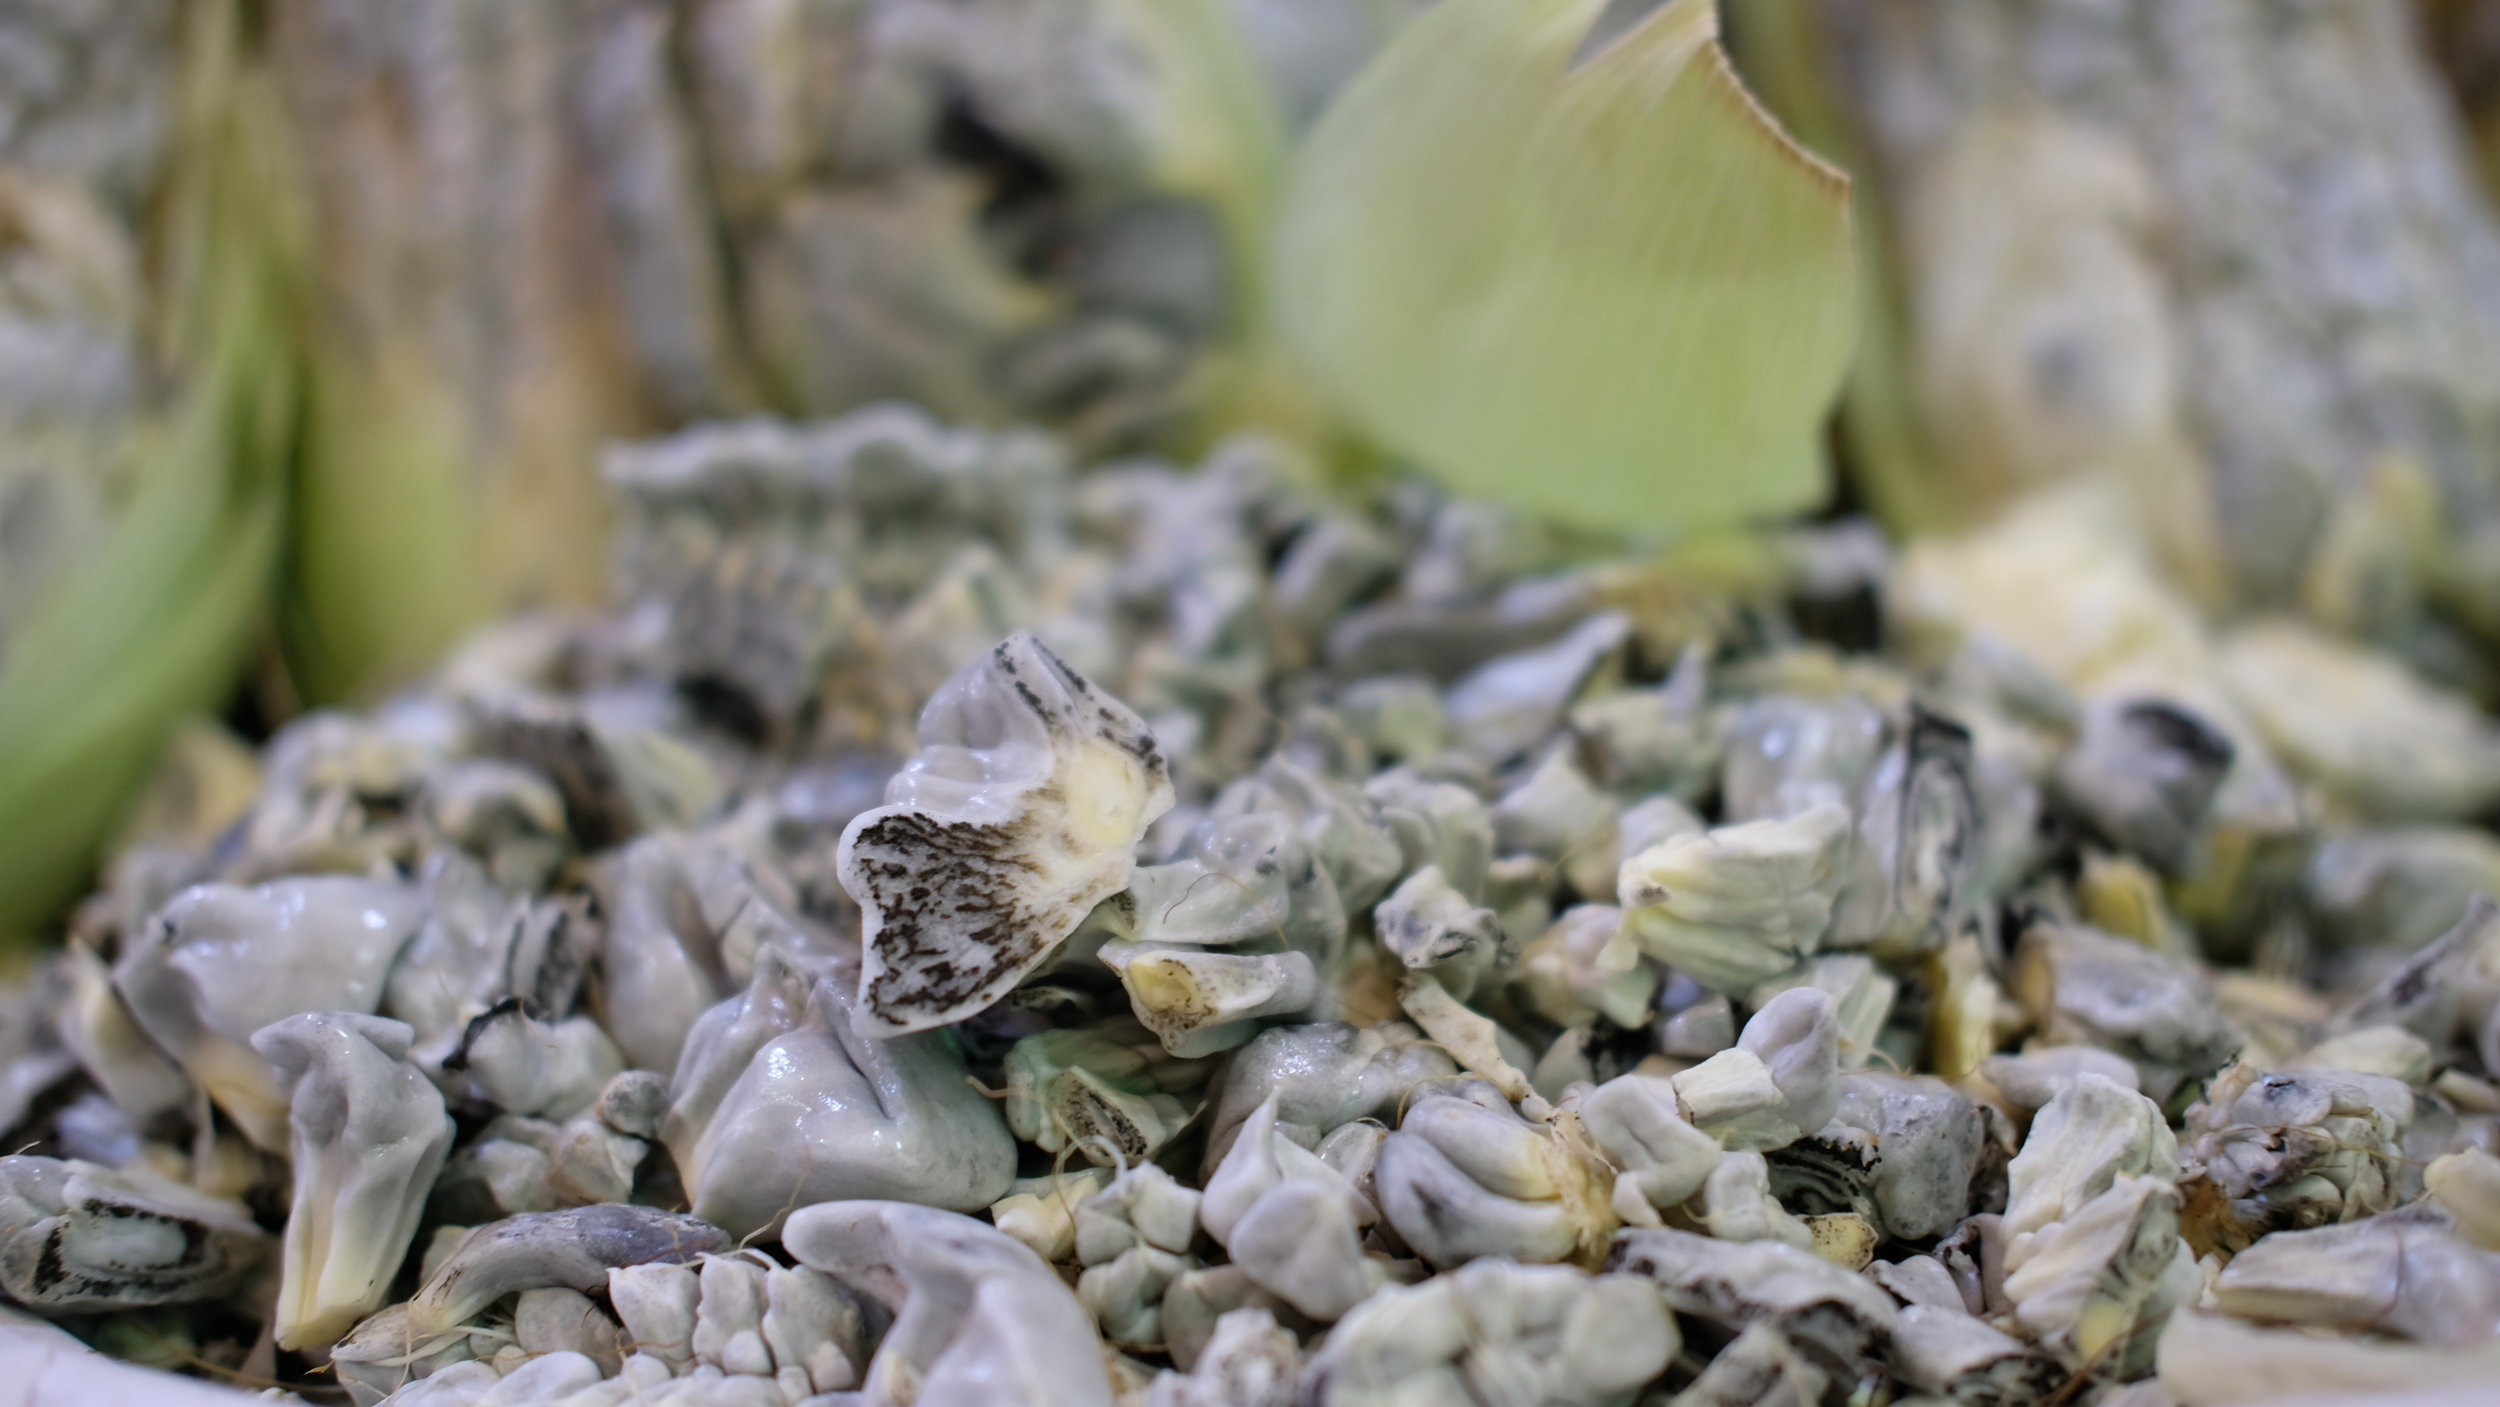 Huitlacoche, a fungus that grows on corn and is considered a delicacy.